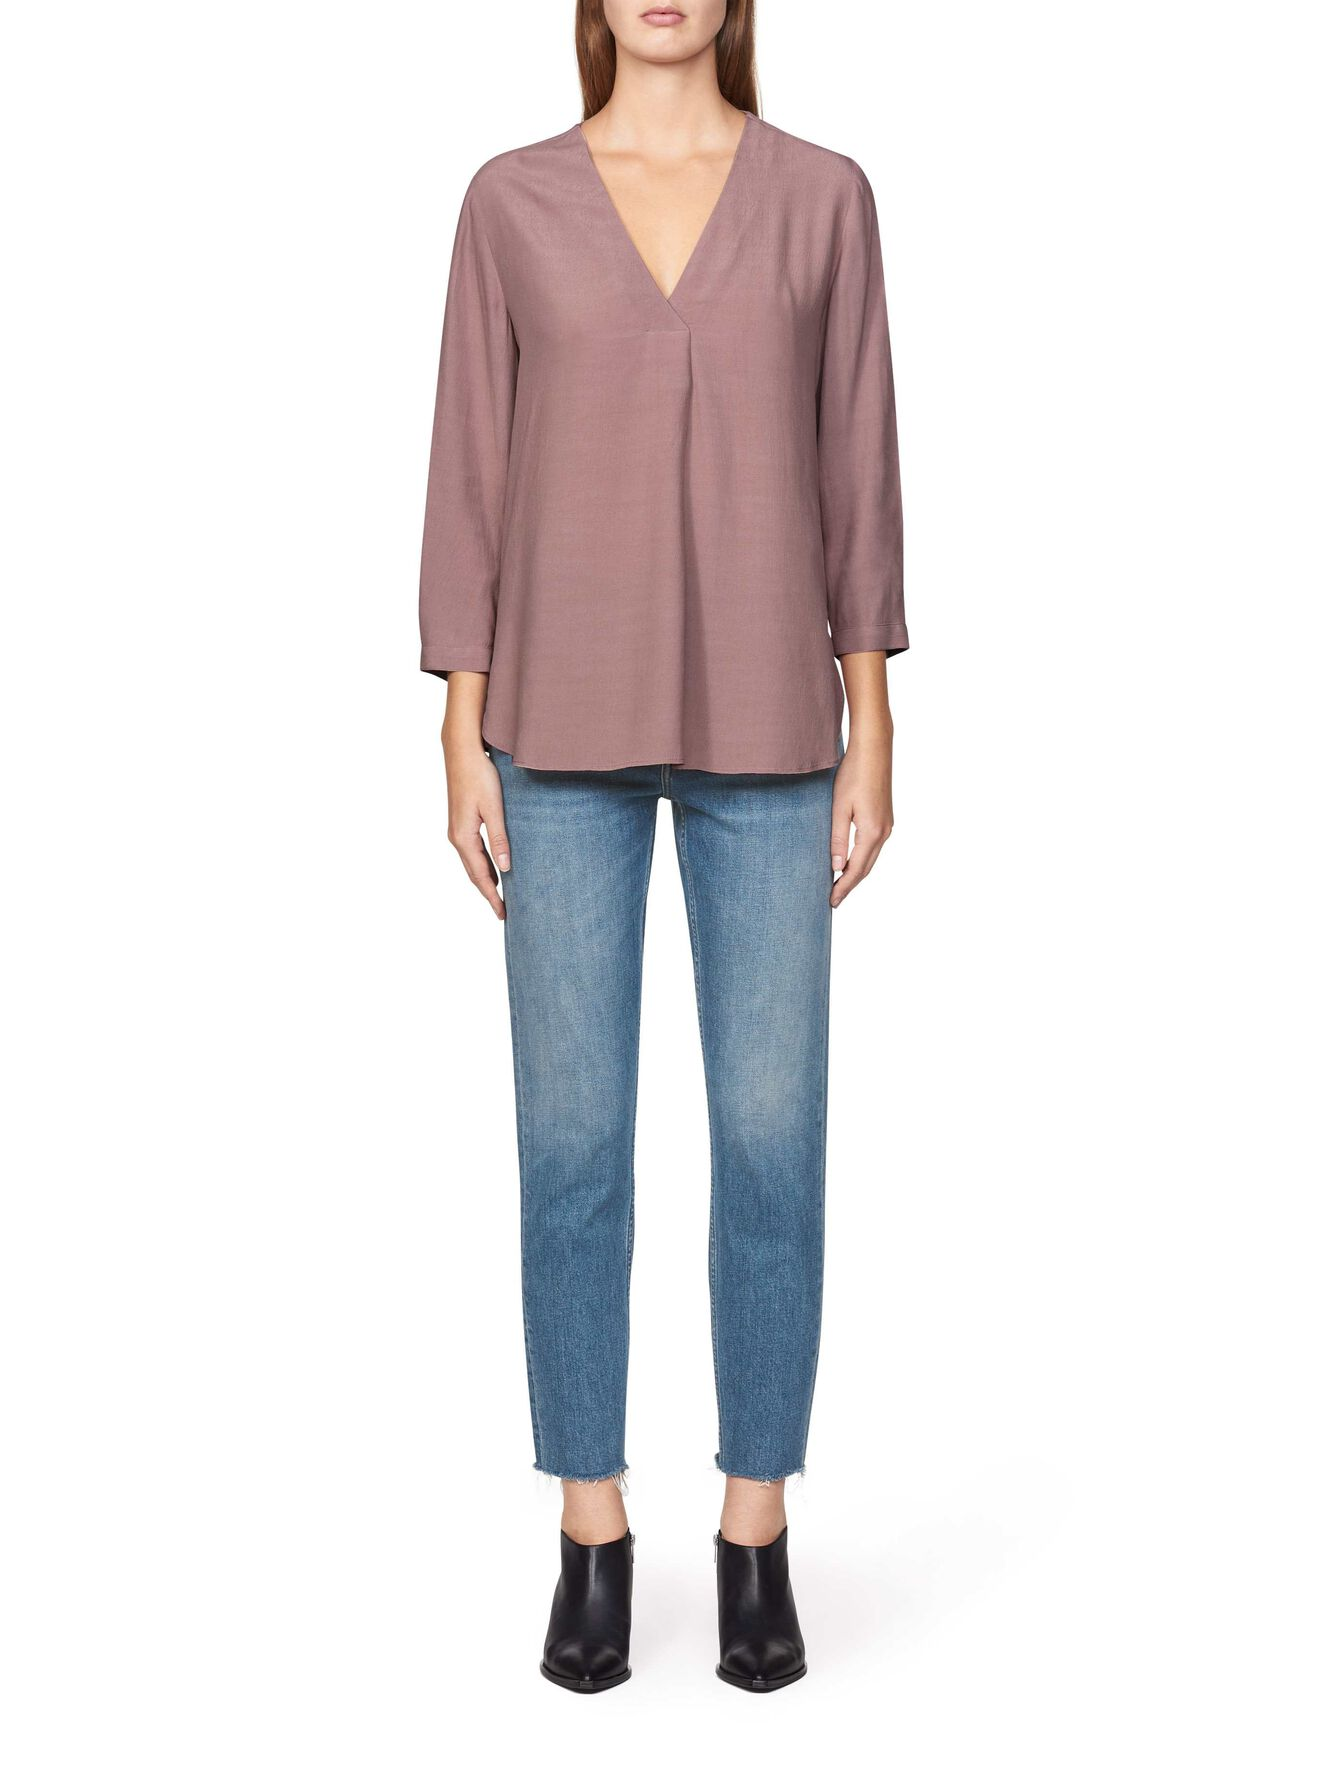 Mere 2 Shirt in Mellow Mulberry from Tiger of Sweden